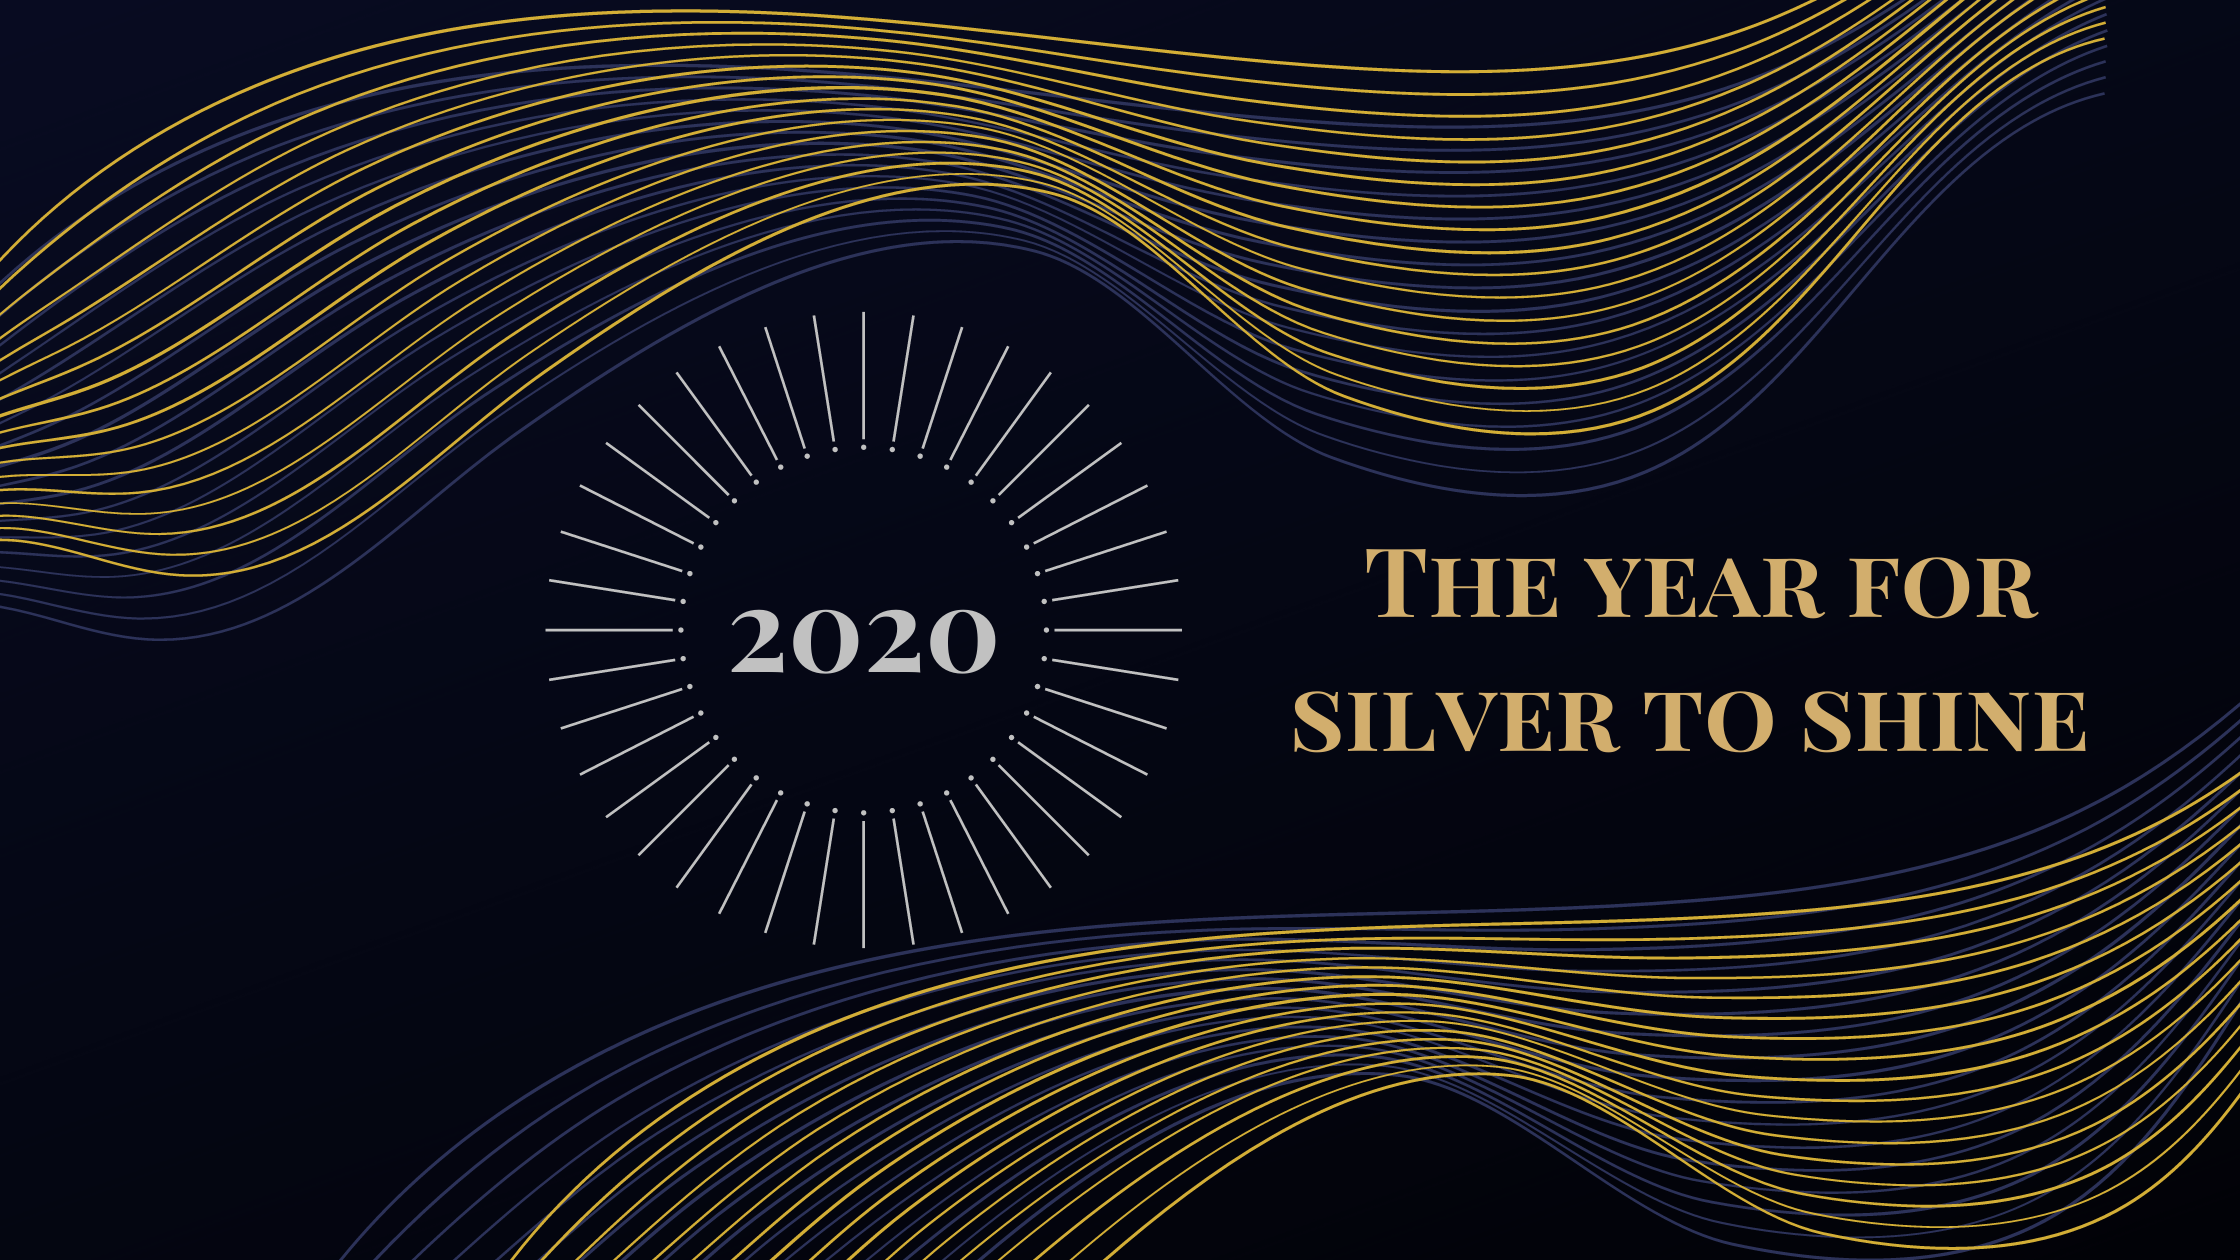 2020 the year for silver to shine